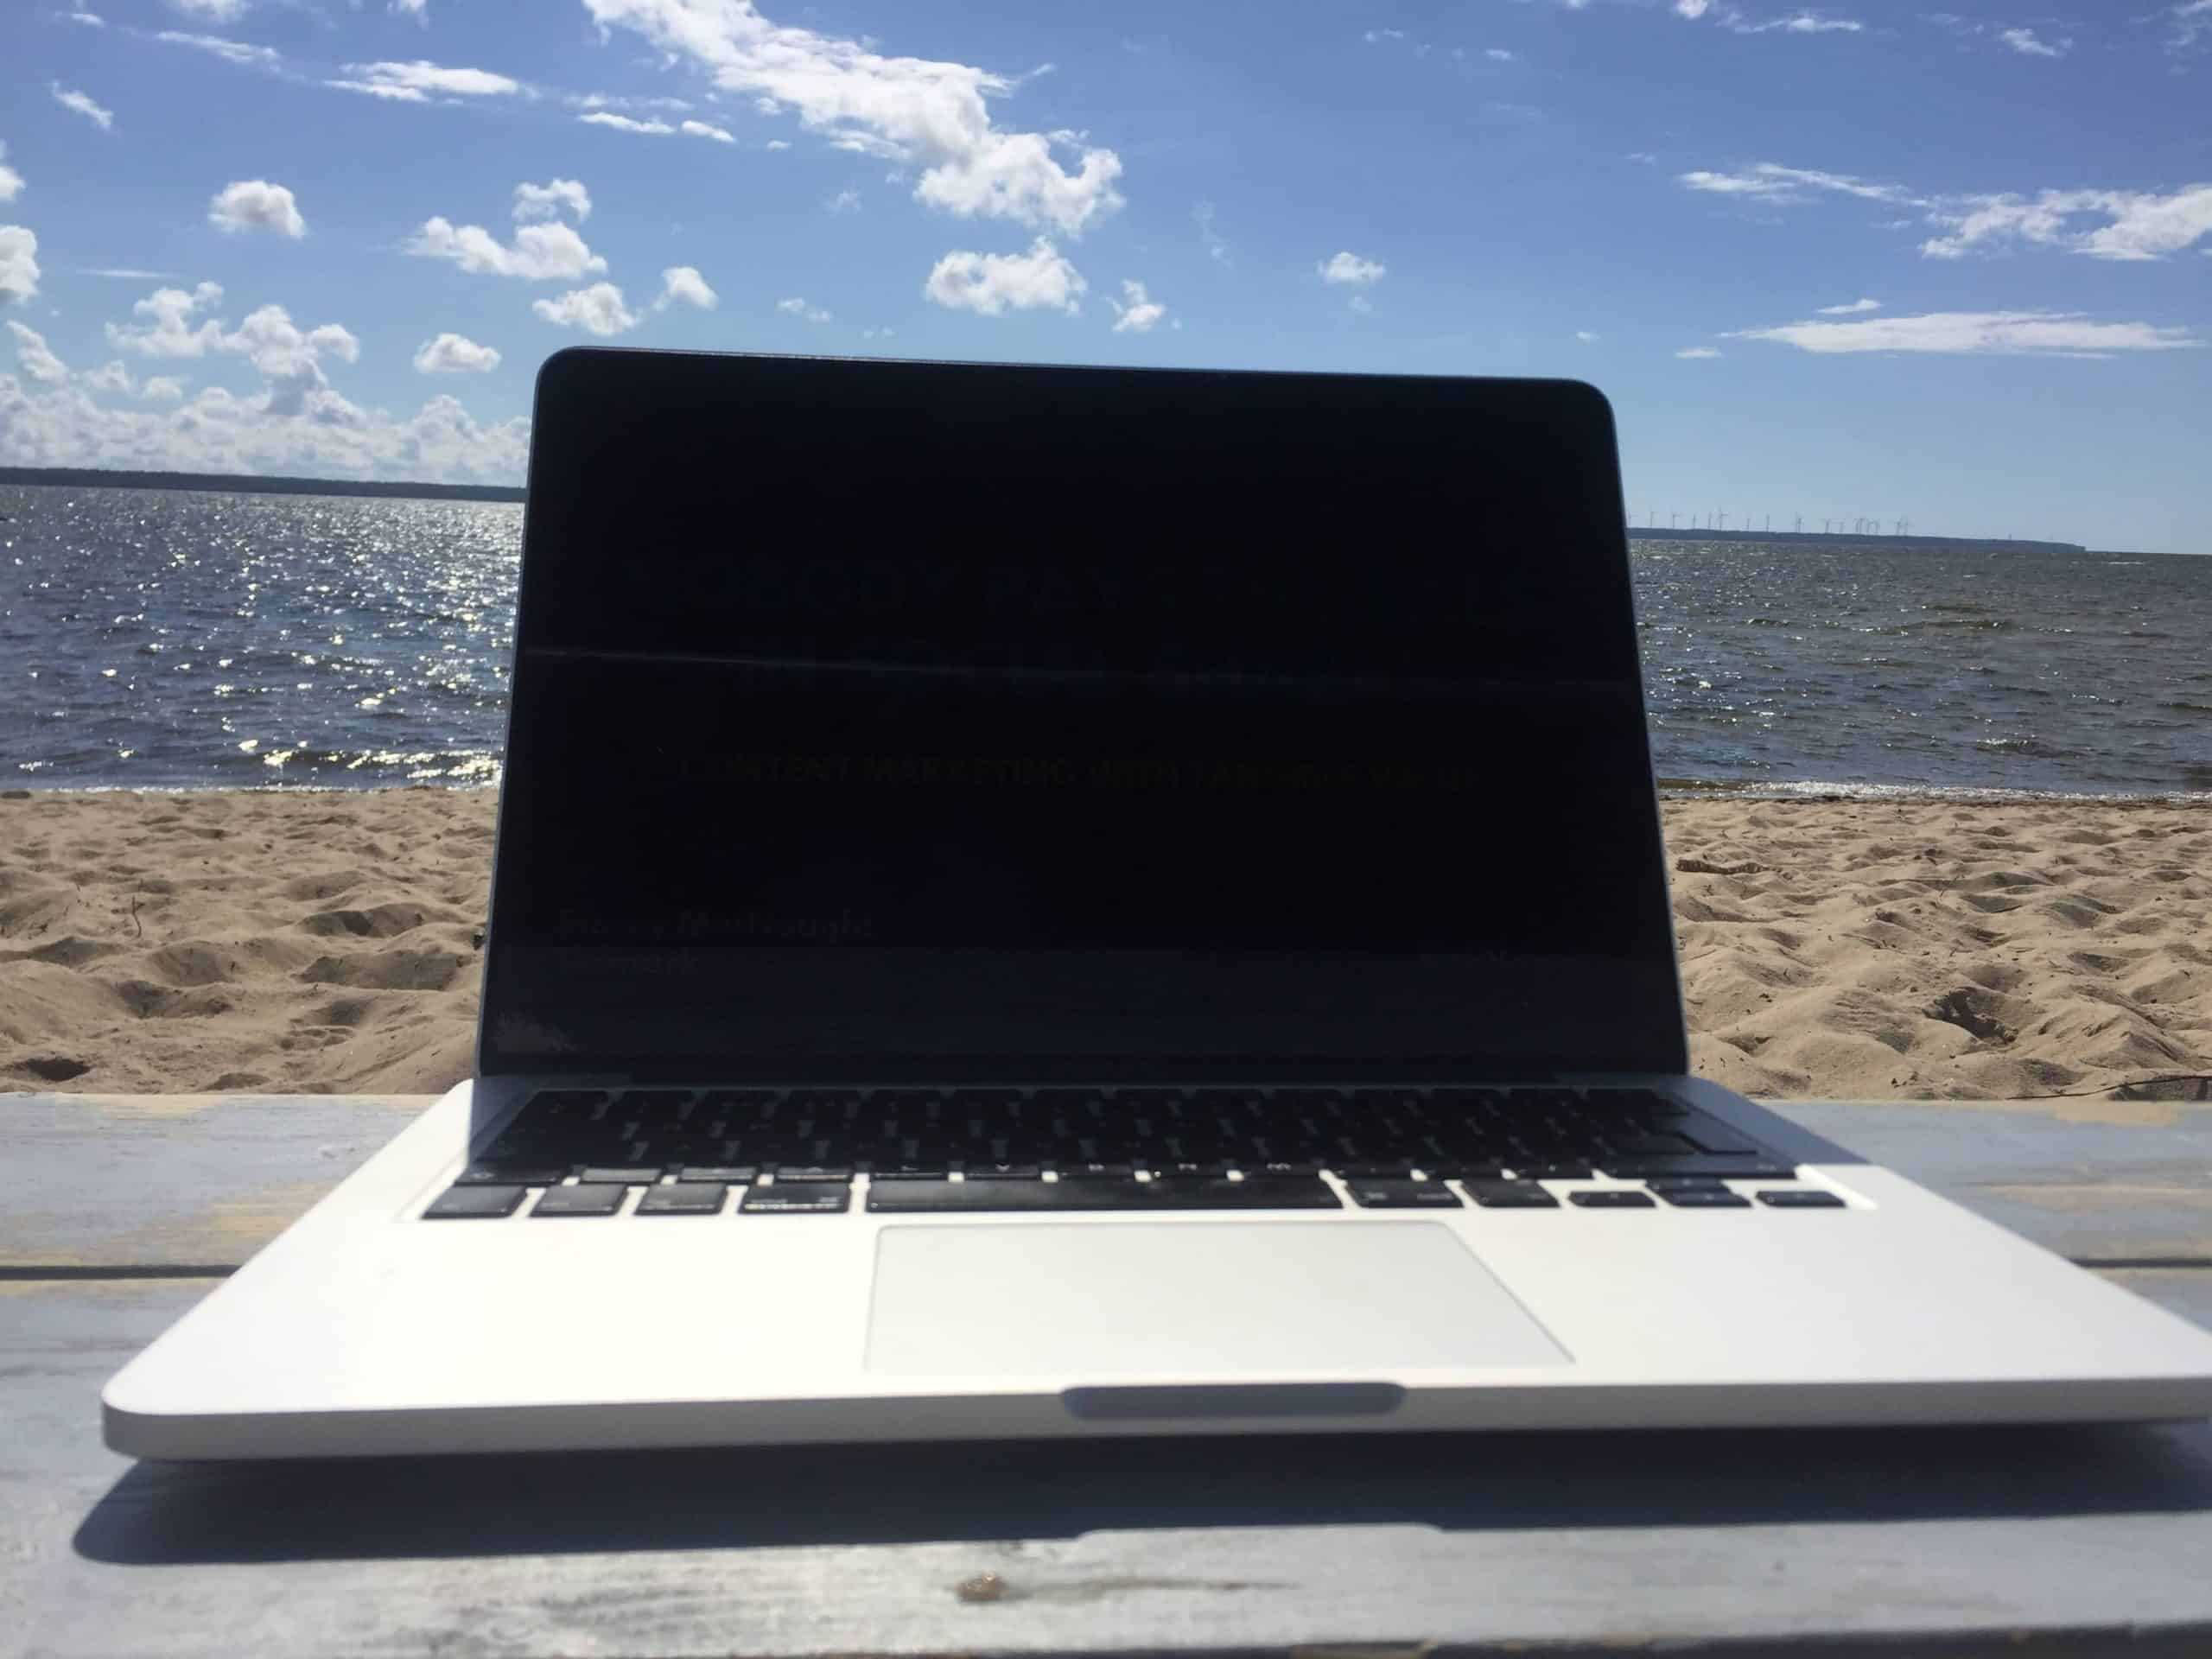 remote working on the beach